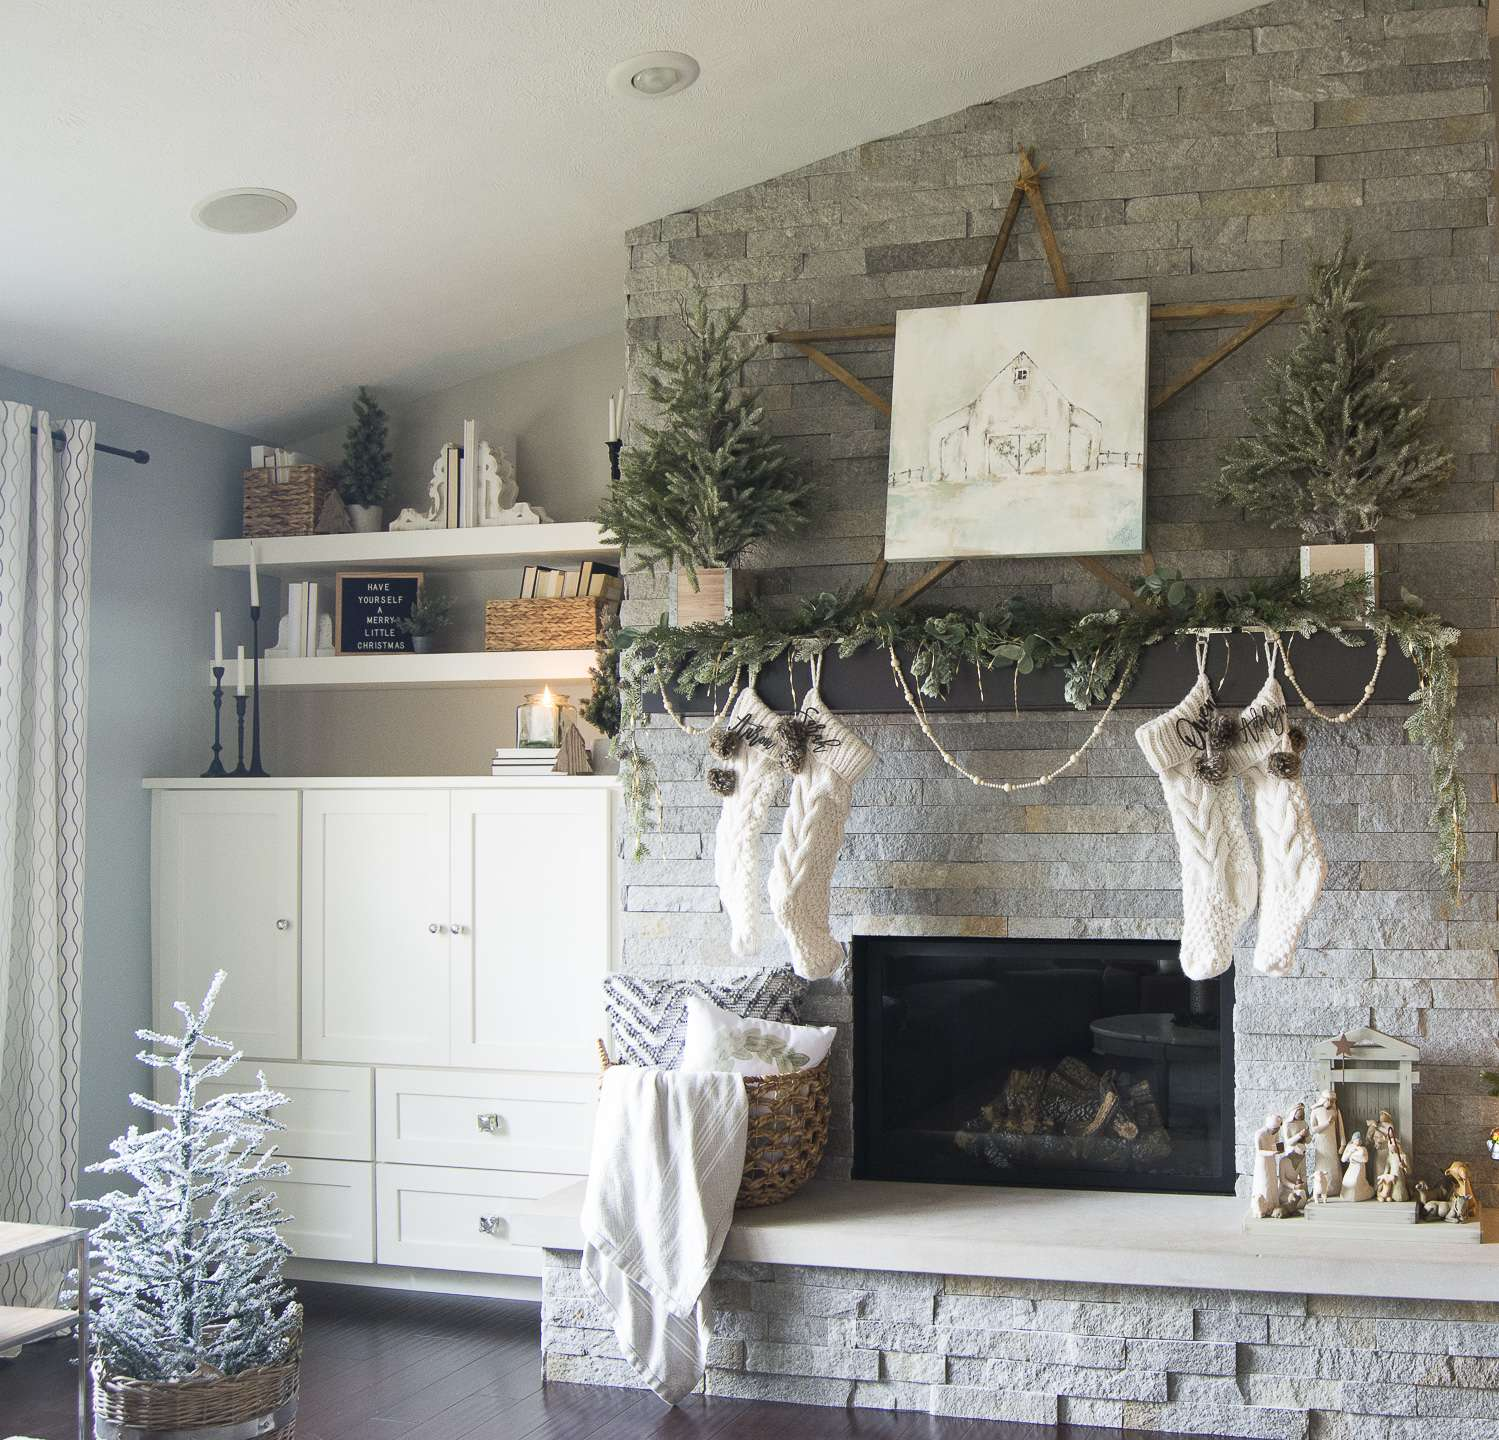 Cozy christmas home tour merry magical grace in my space christmastime should be cozy and filled with joy join me for my cozy christmas home solutioingenieria Choice Image